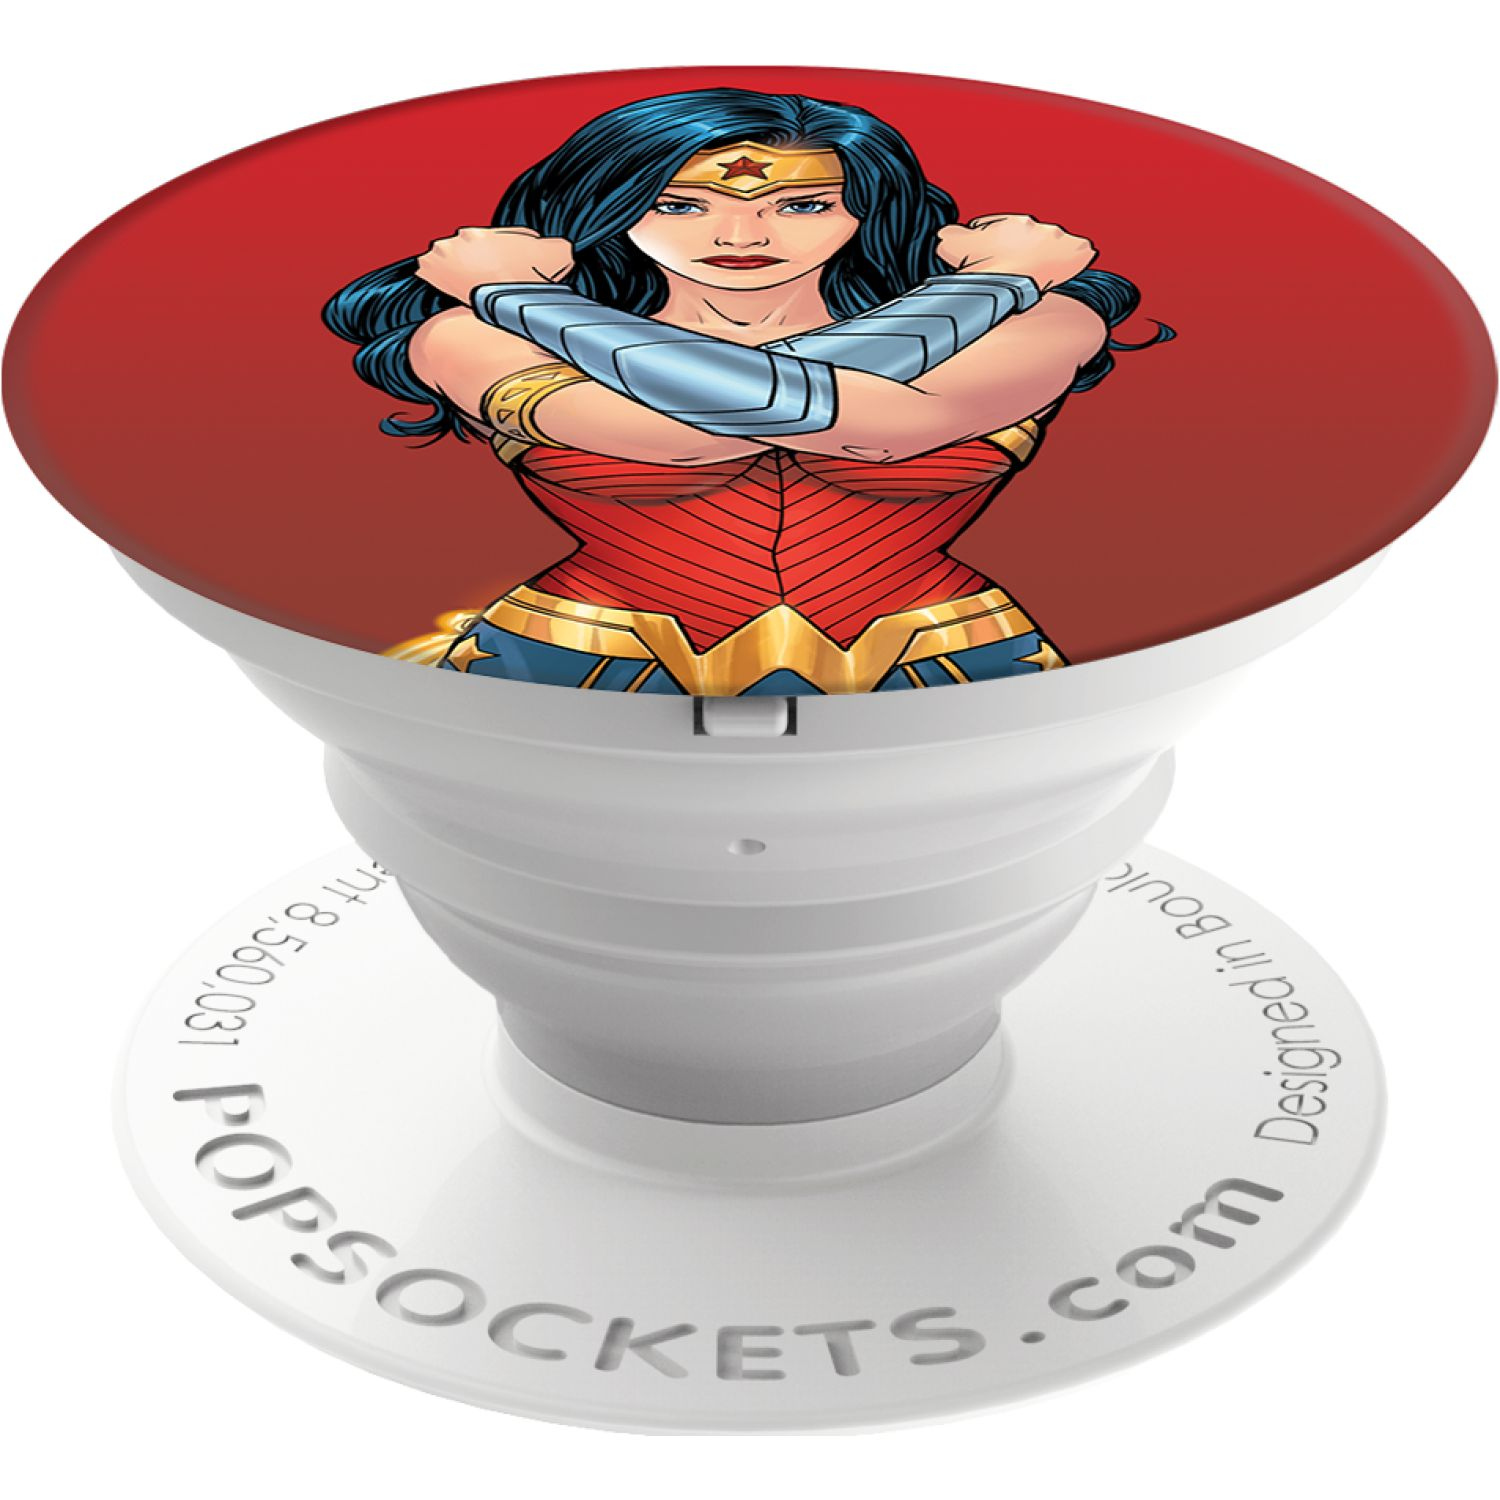 POPSOCKETS W. Woman Gy Gy Varios Soportes